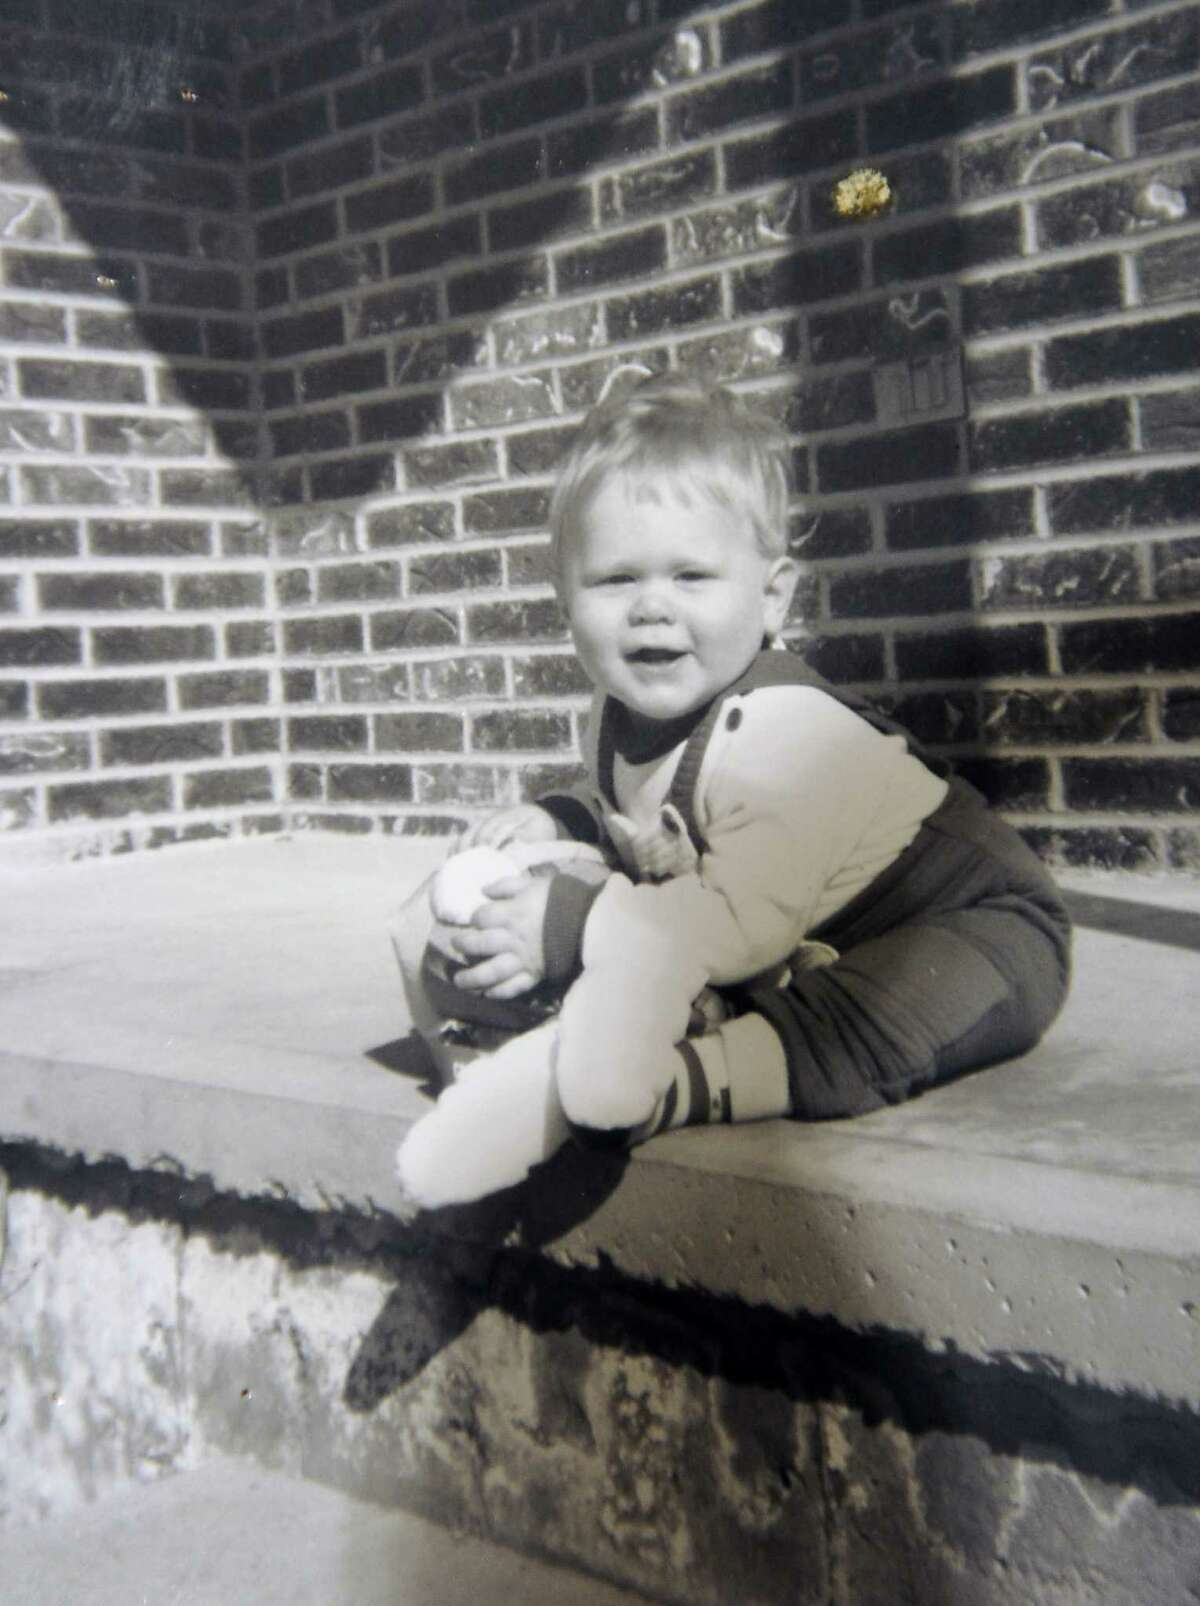 Photograph of Kevin and Diane Flood's son, Dan, now 24, who has battled heroin addiction for more than 6 years and has been homeless in Albany for several months. (Courtesy Flood family)